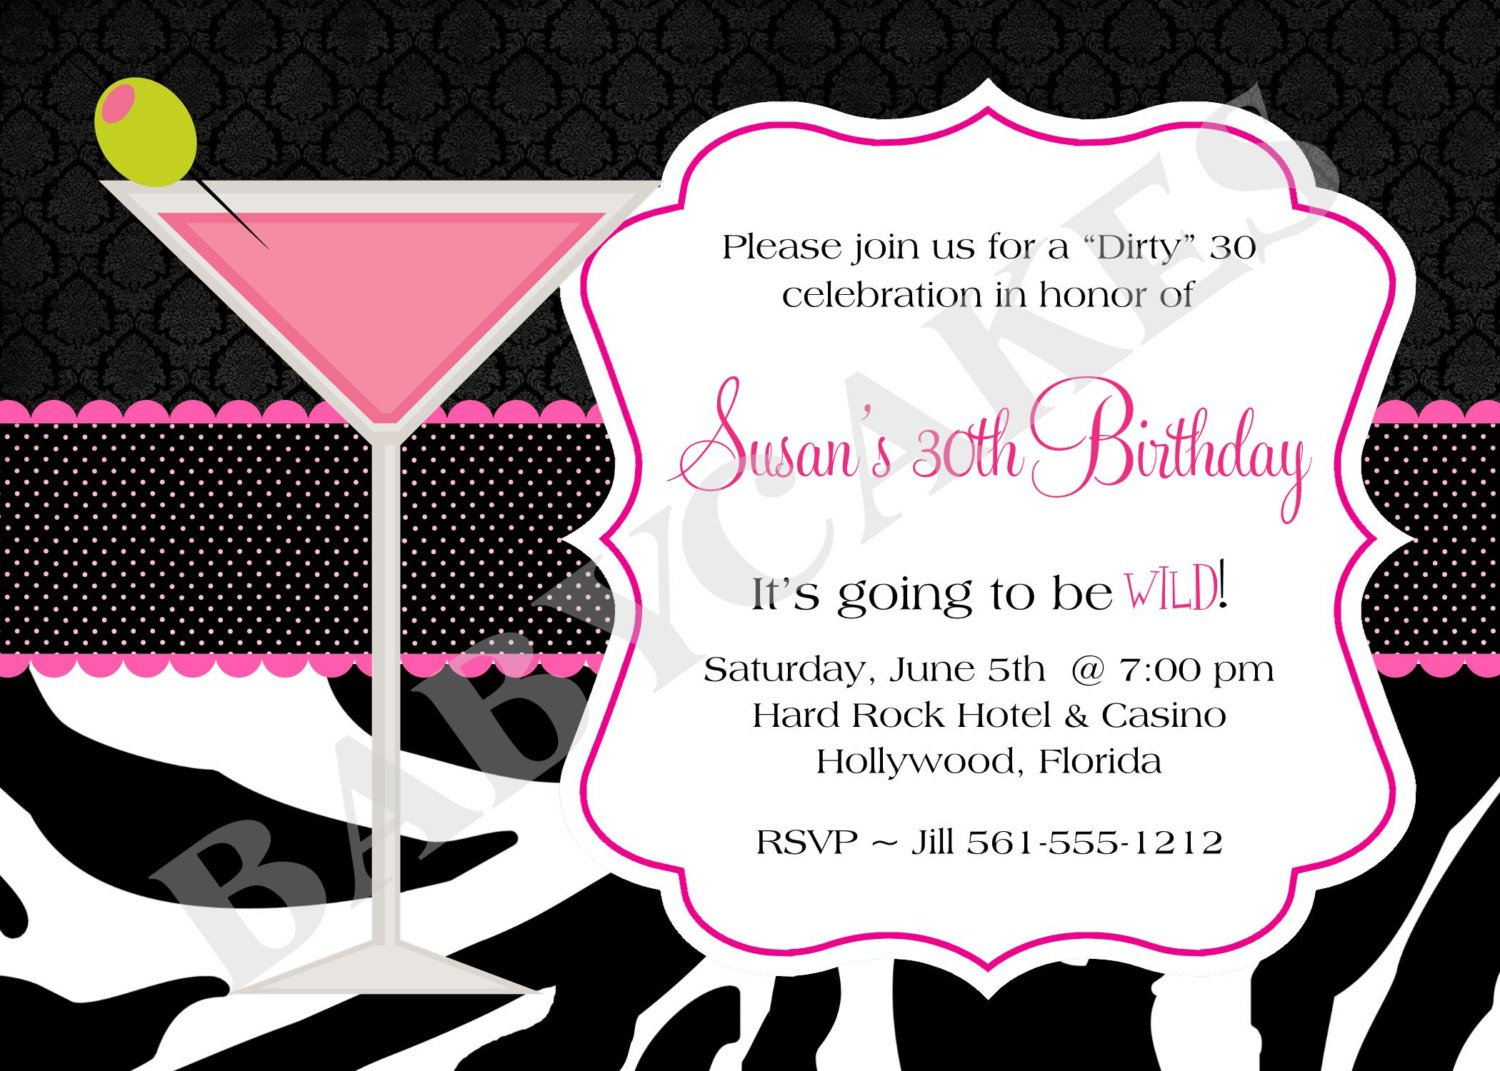 Surprise Th Birthday Invitation Wording - Birthday invitations wording for 30th